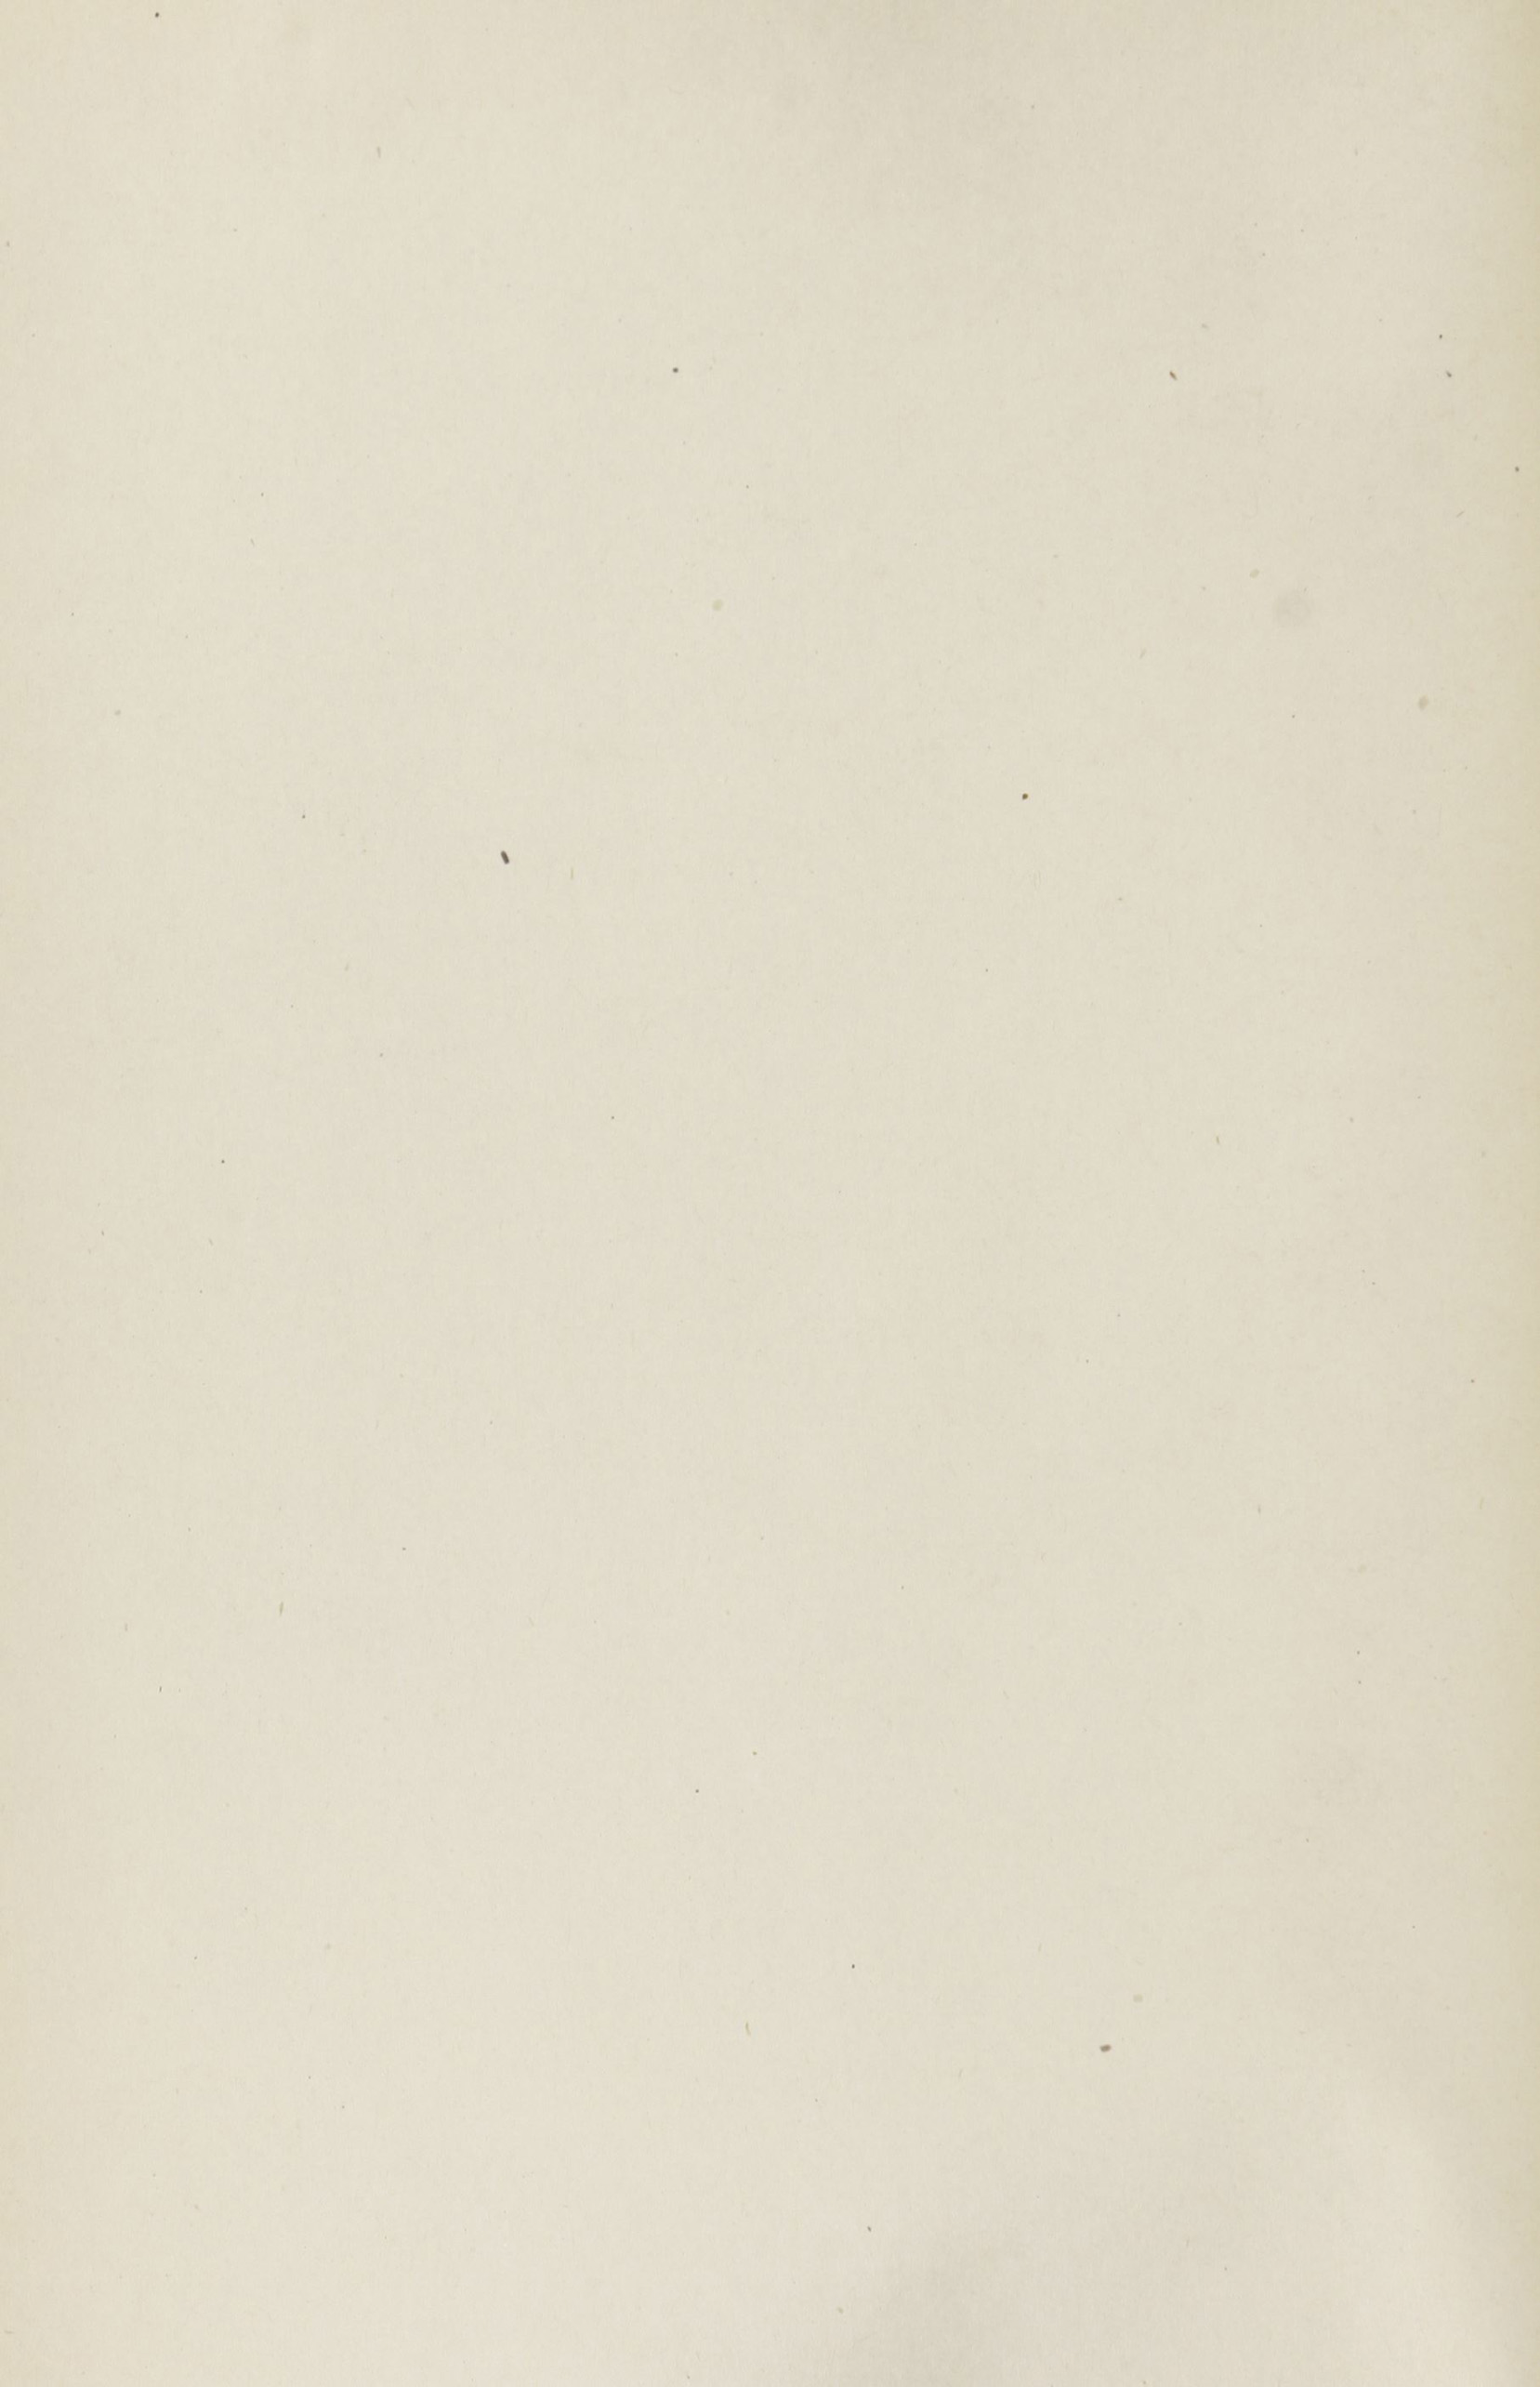 Charleston Yearbook, 1916, page xxviii